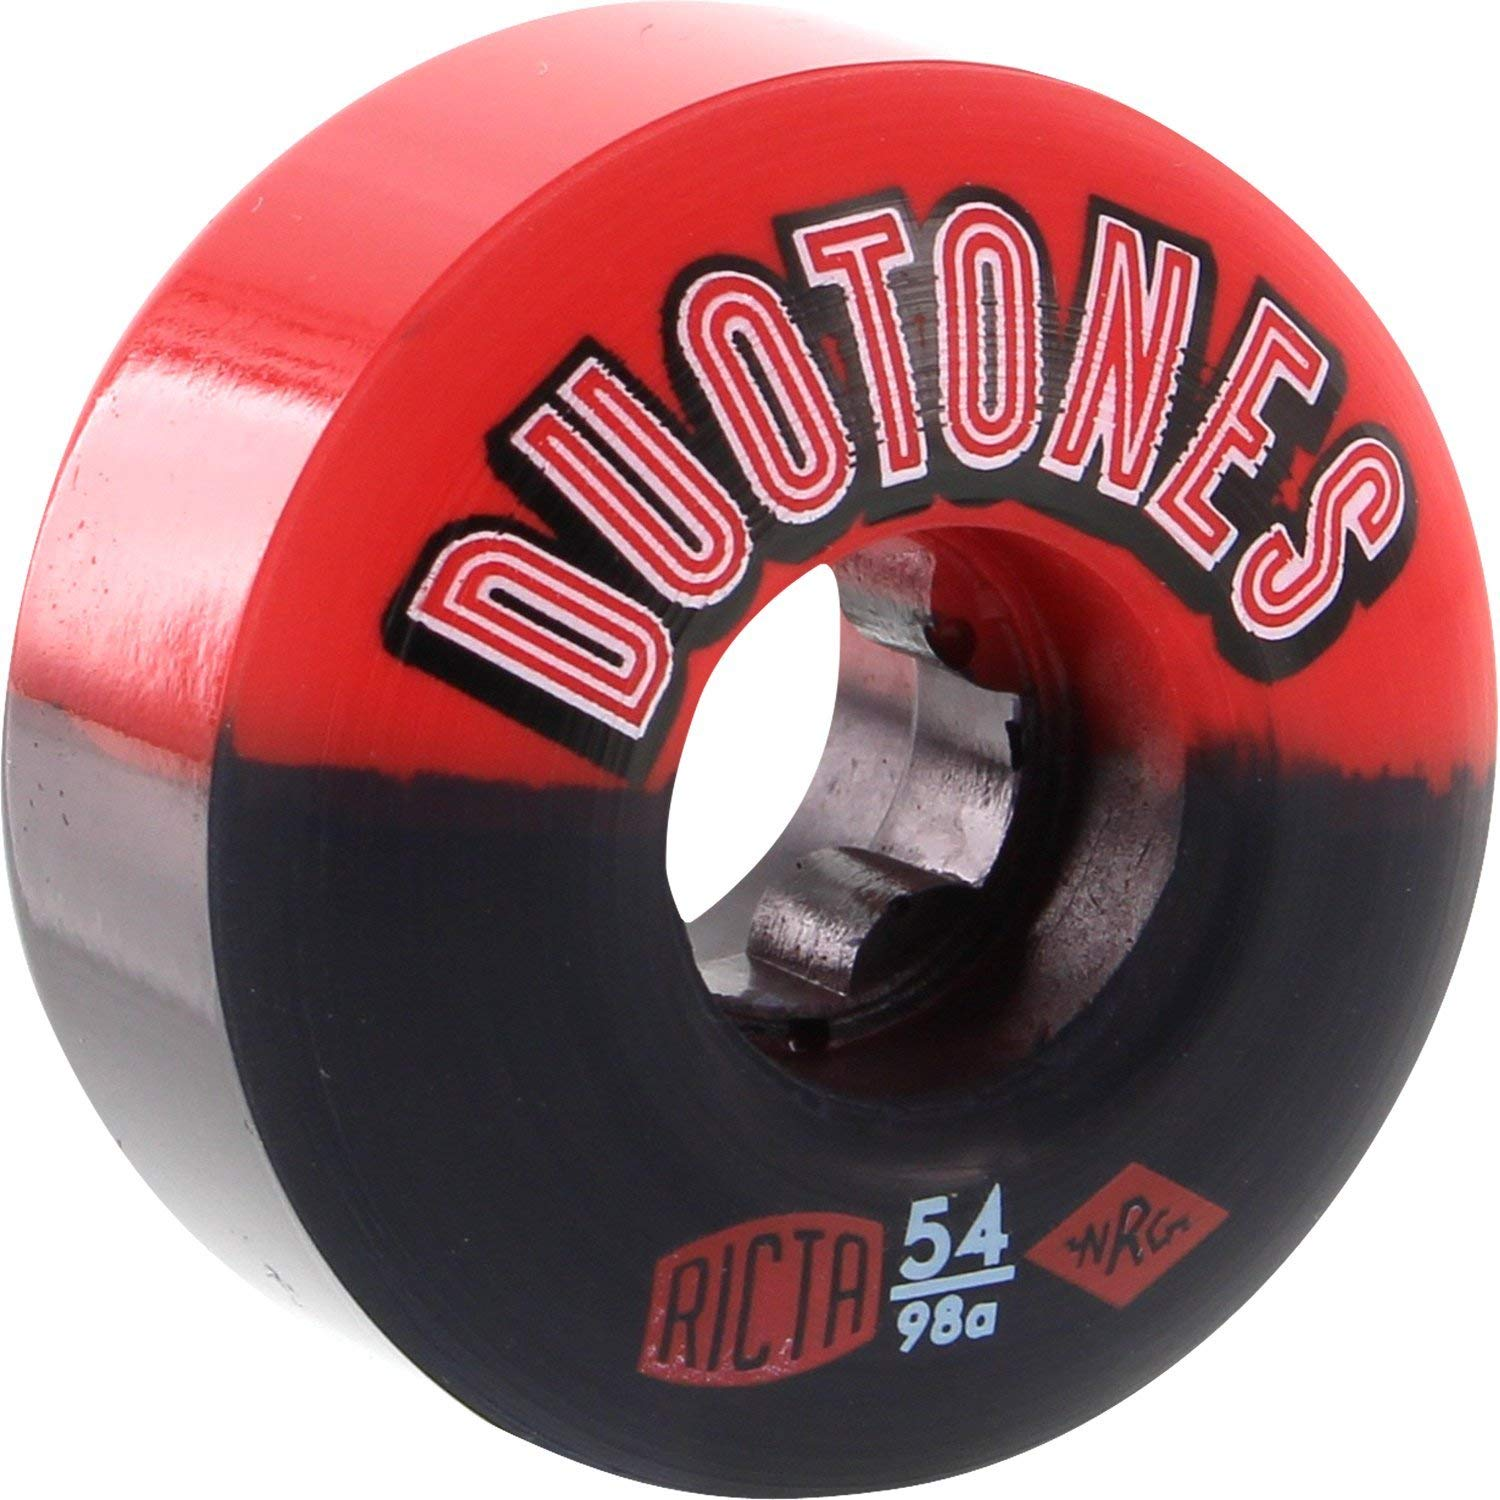 Independent Bearing Ricta Skateboard Wheels Duo Tones 54mm Electros 98a 4 Pack